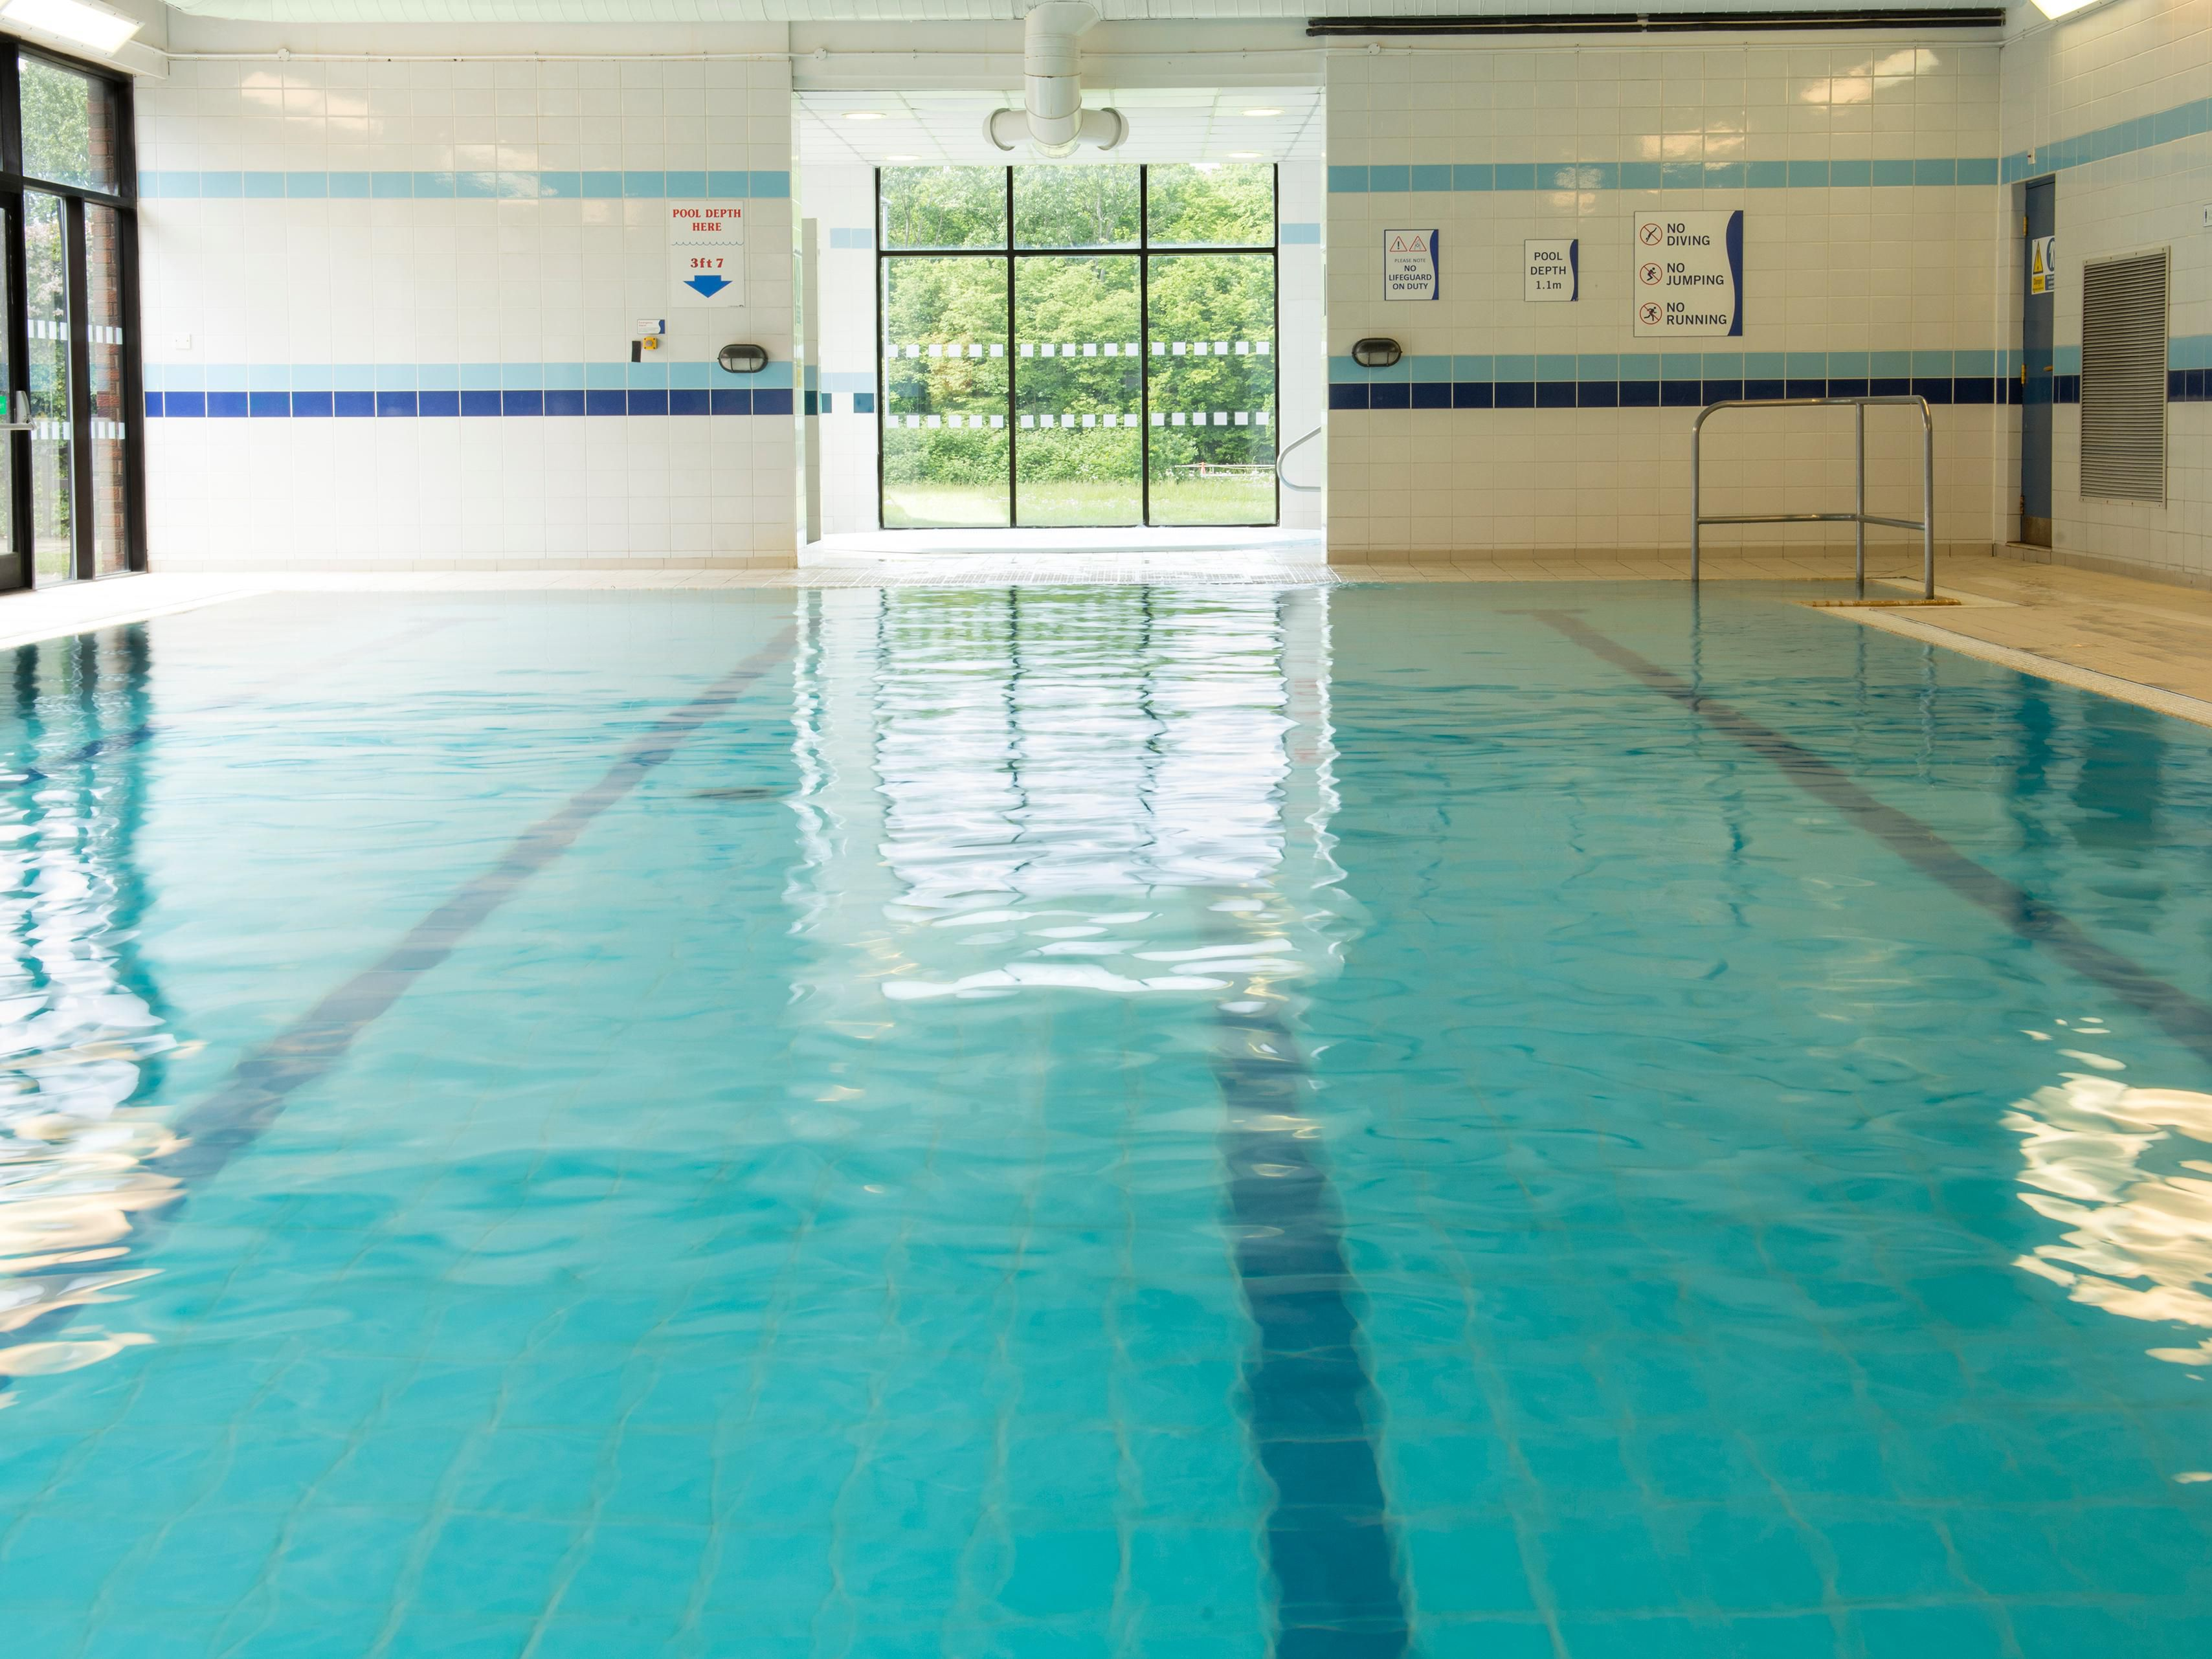 Relax in our Spirit Health Club Swimming Pool